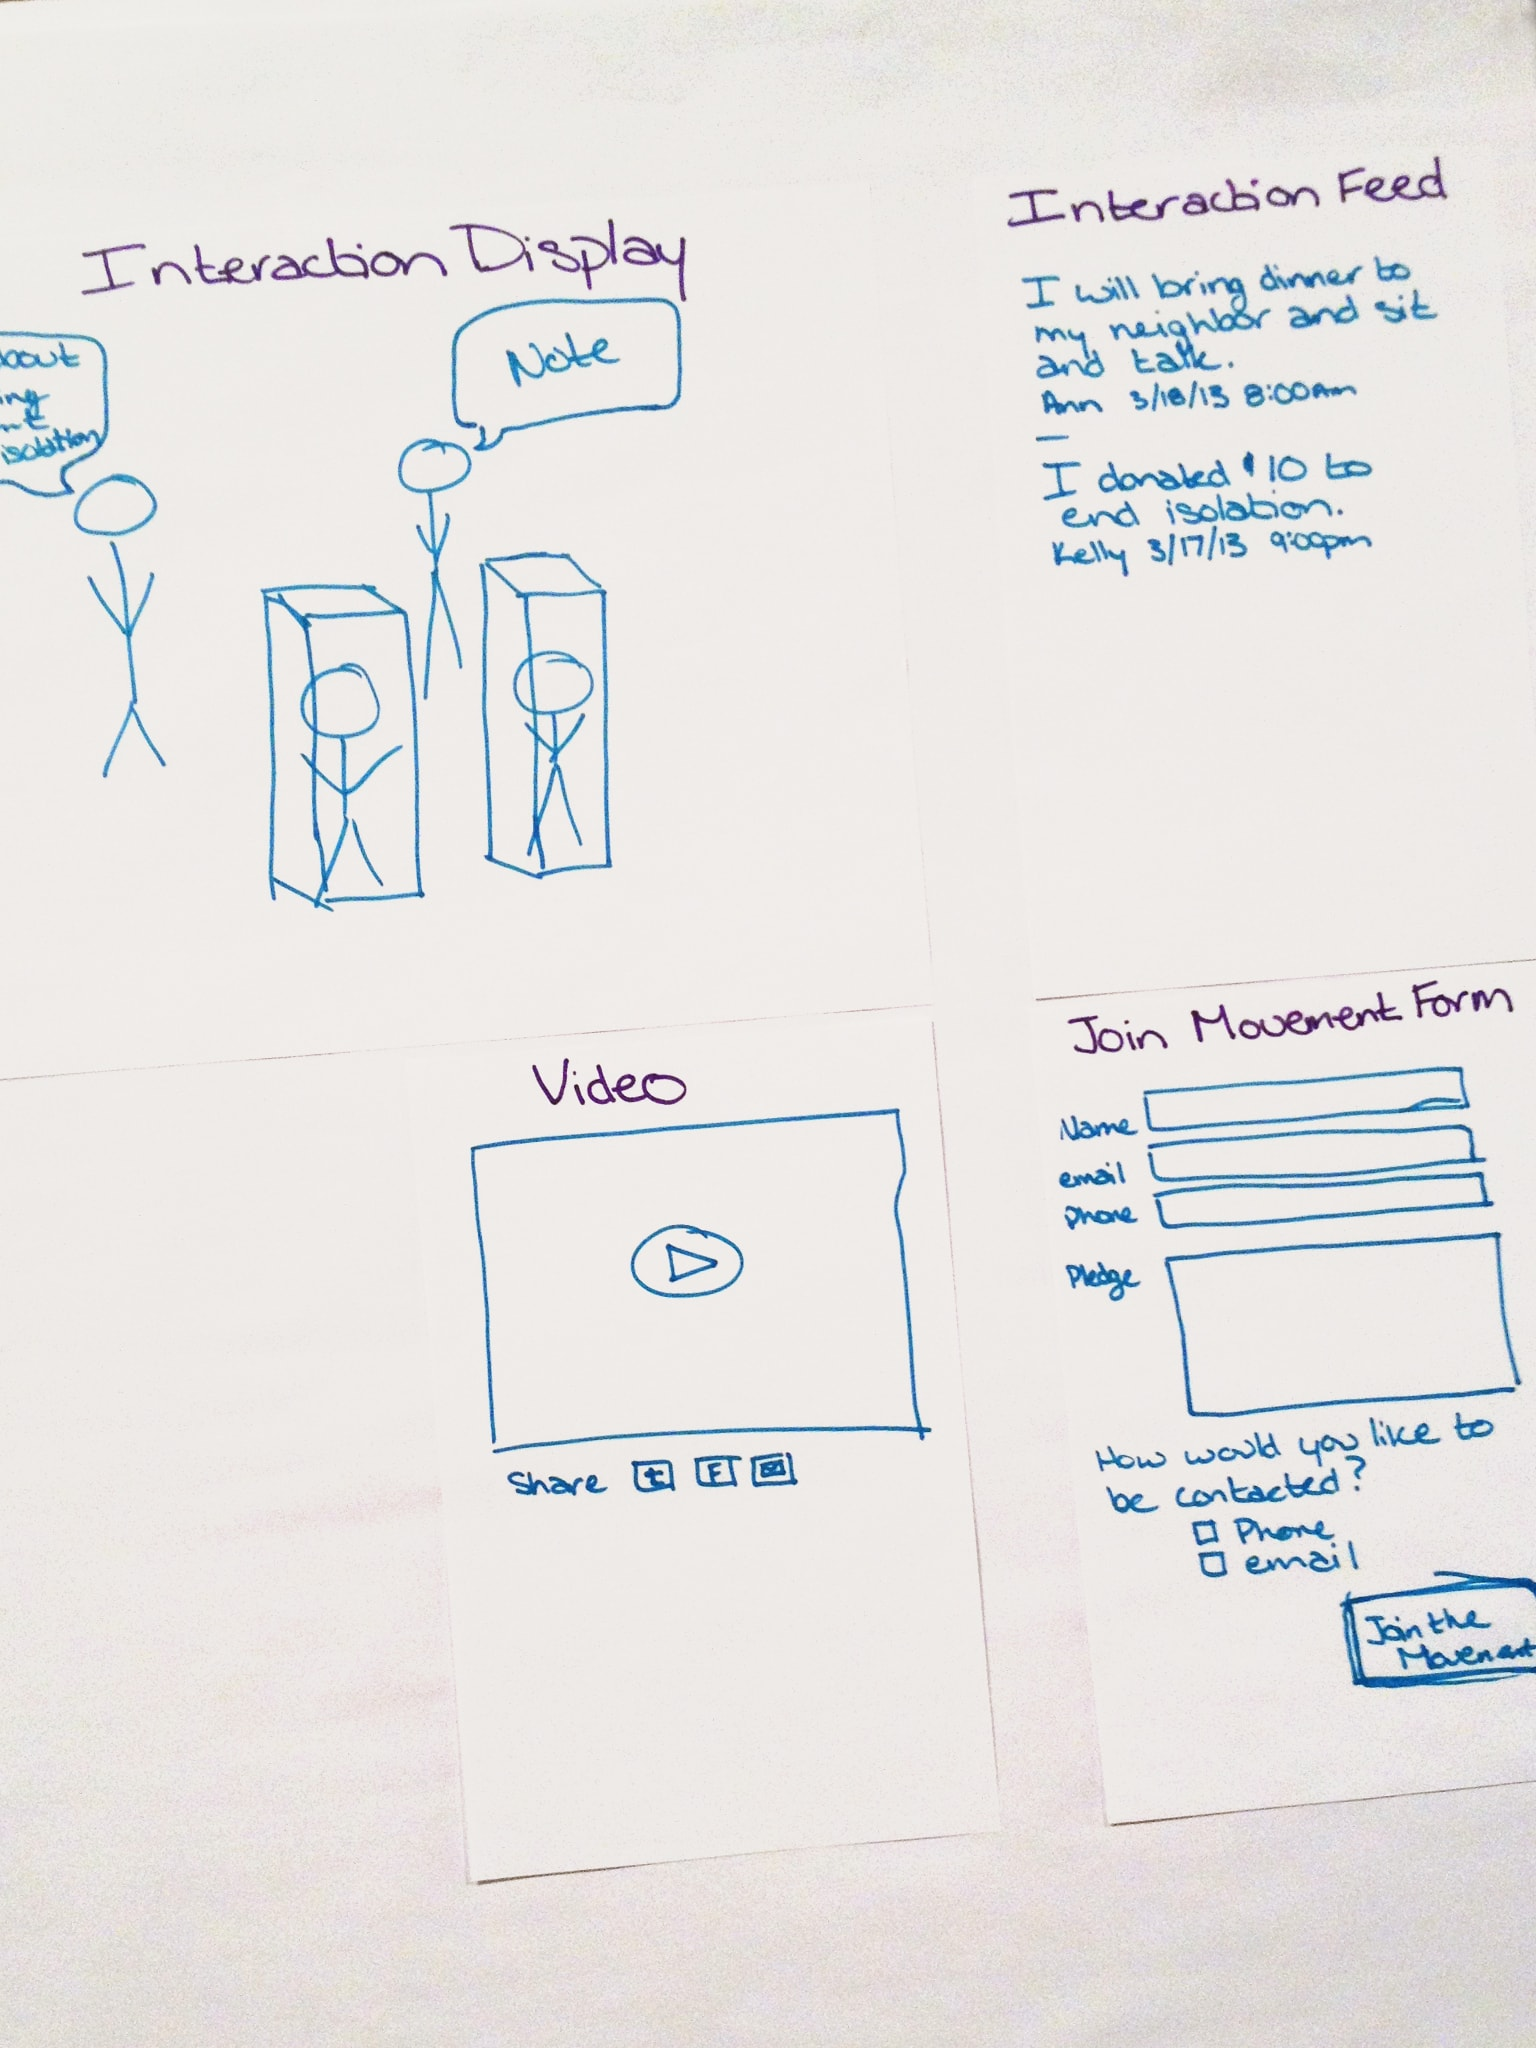 Usability can improve the customer's experience